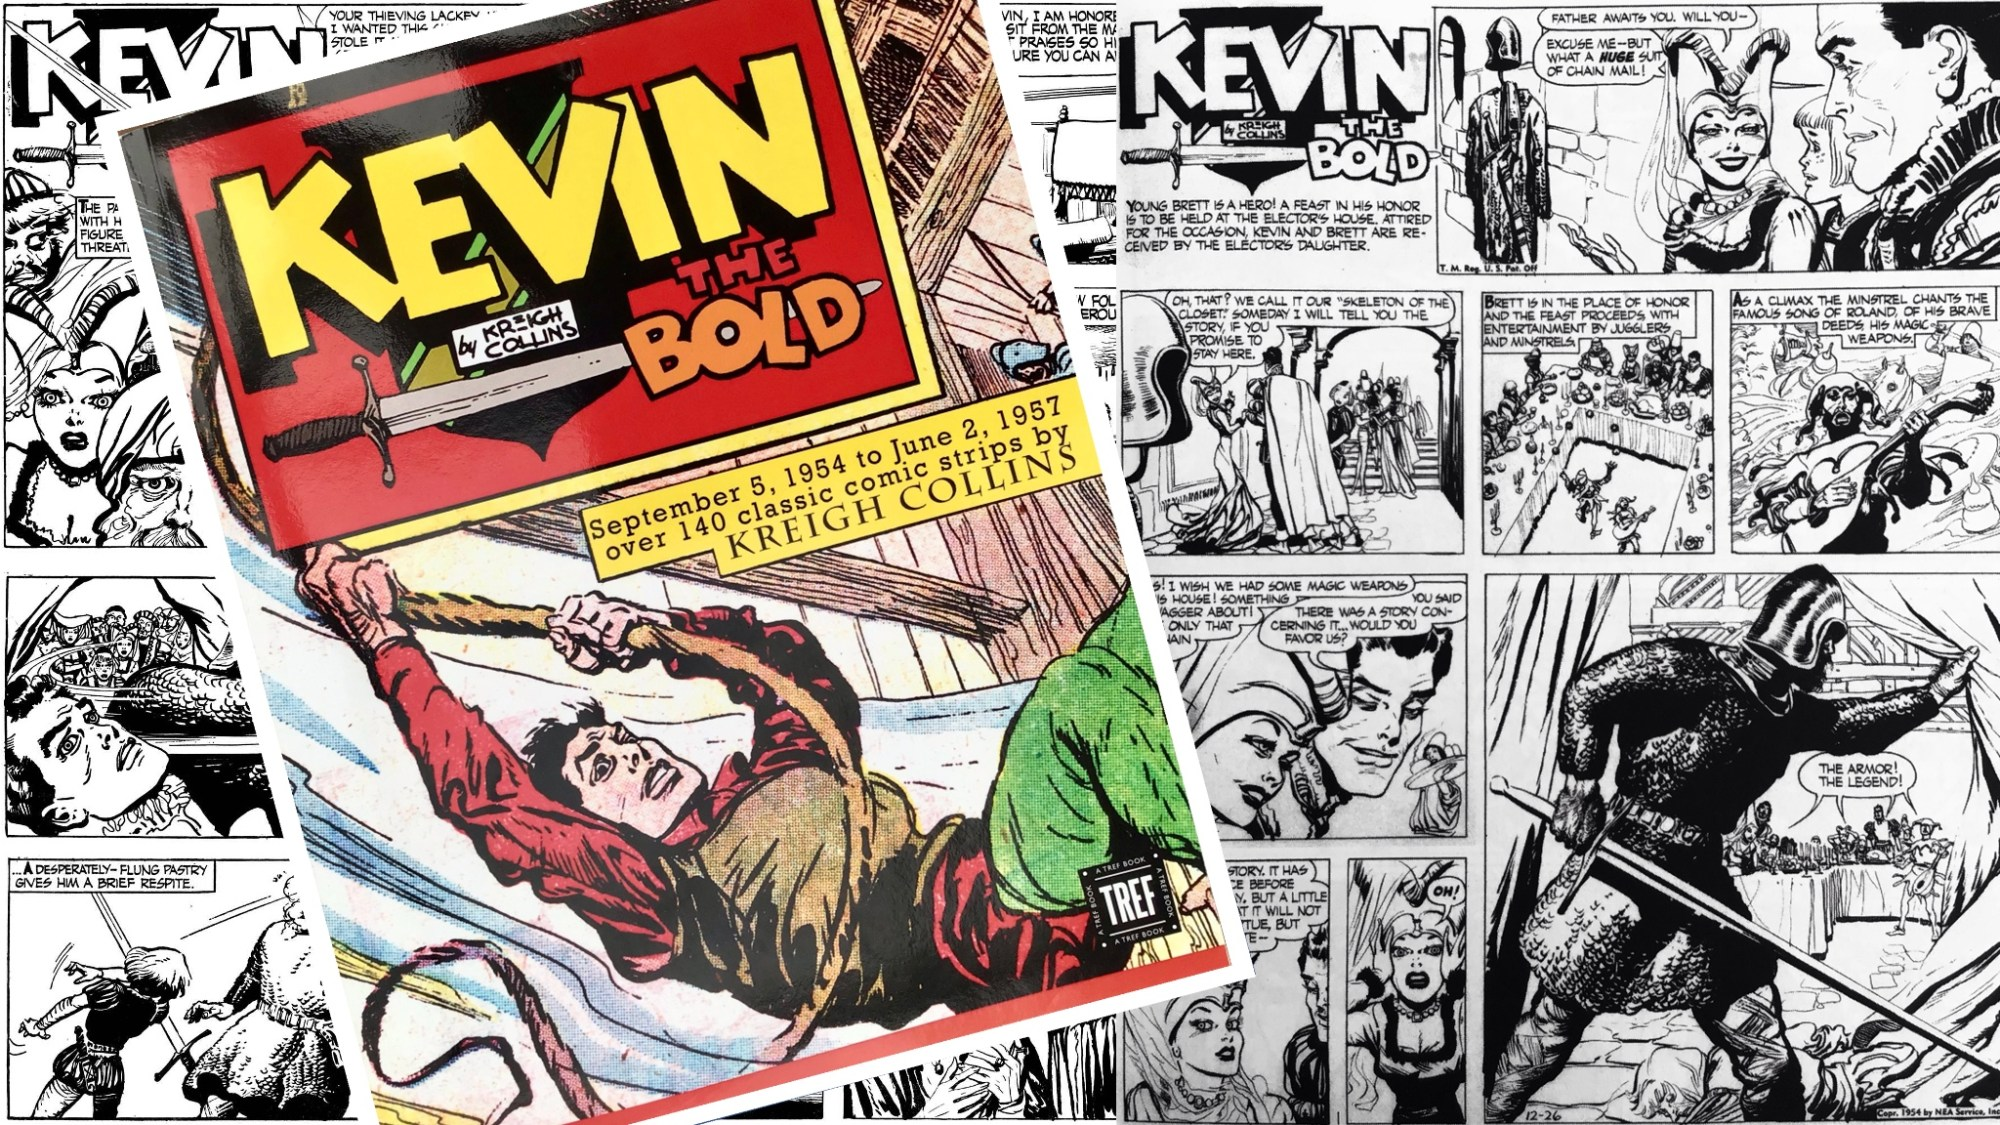 Kevin the Bold (2017)